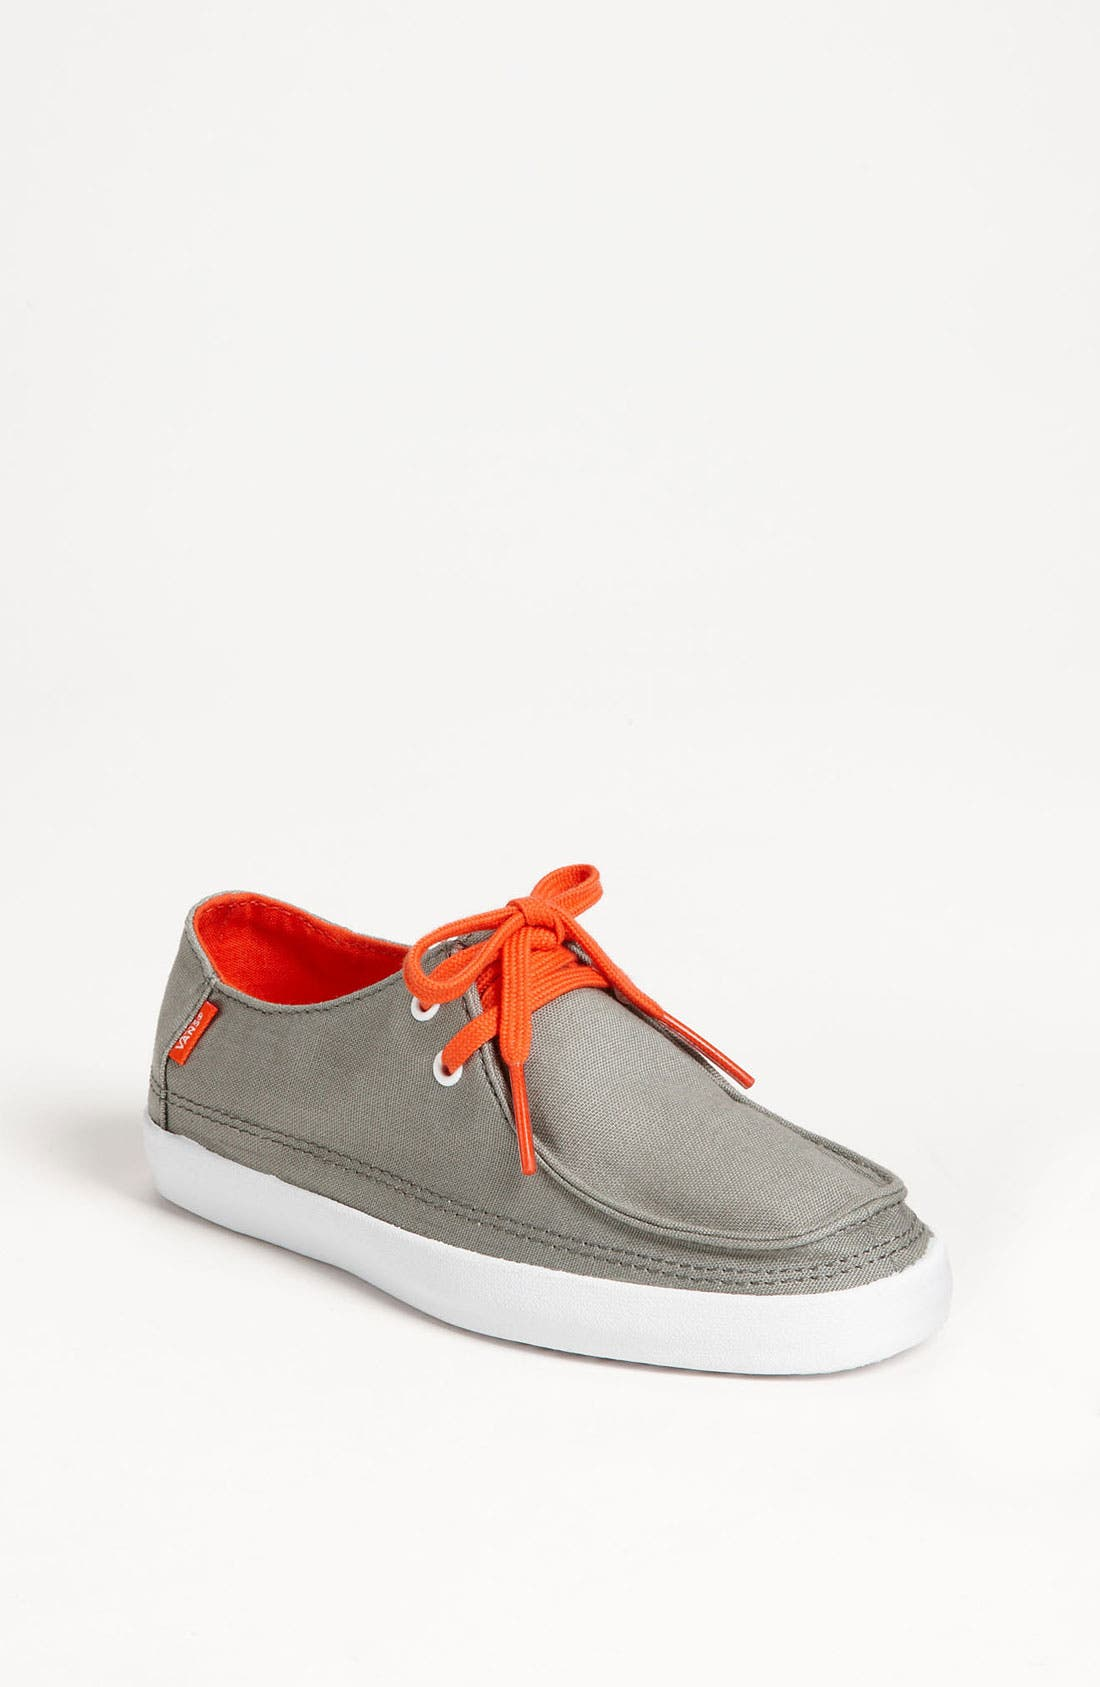 Alternate Image 1 Selected - Vans 'Rata' Sneaker (Toddler, Little Kid & Big Kid)